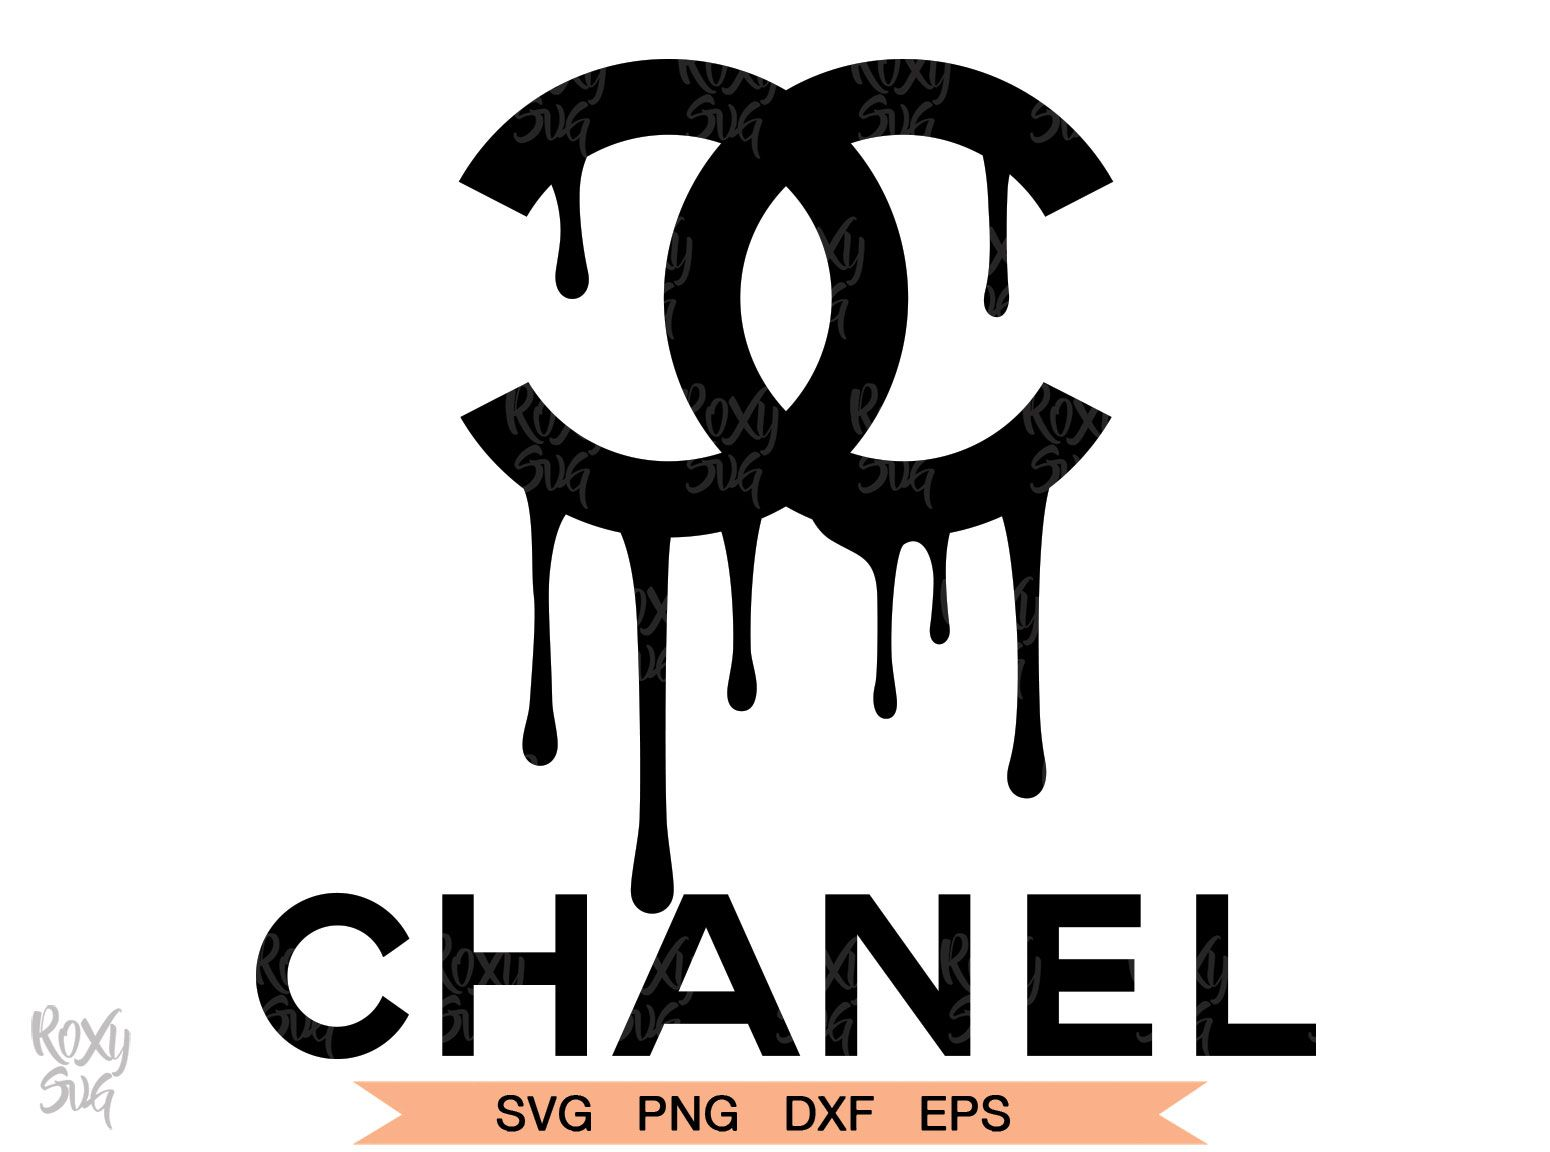 Chanel Drip Logo Chanel Dripping Logo Graphic By Roxysvg26 Creative Fabrica Cricut Svg Files Free Svg Files For Cricut Chanel Art Print